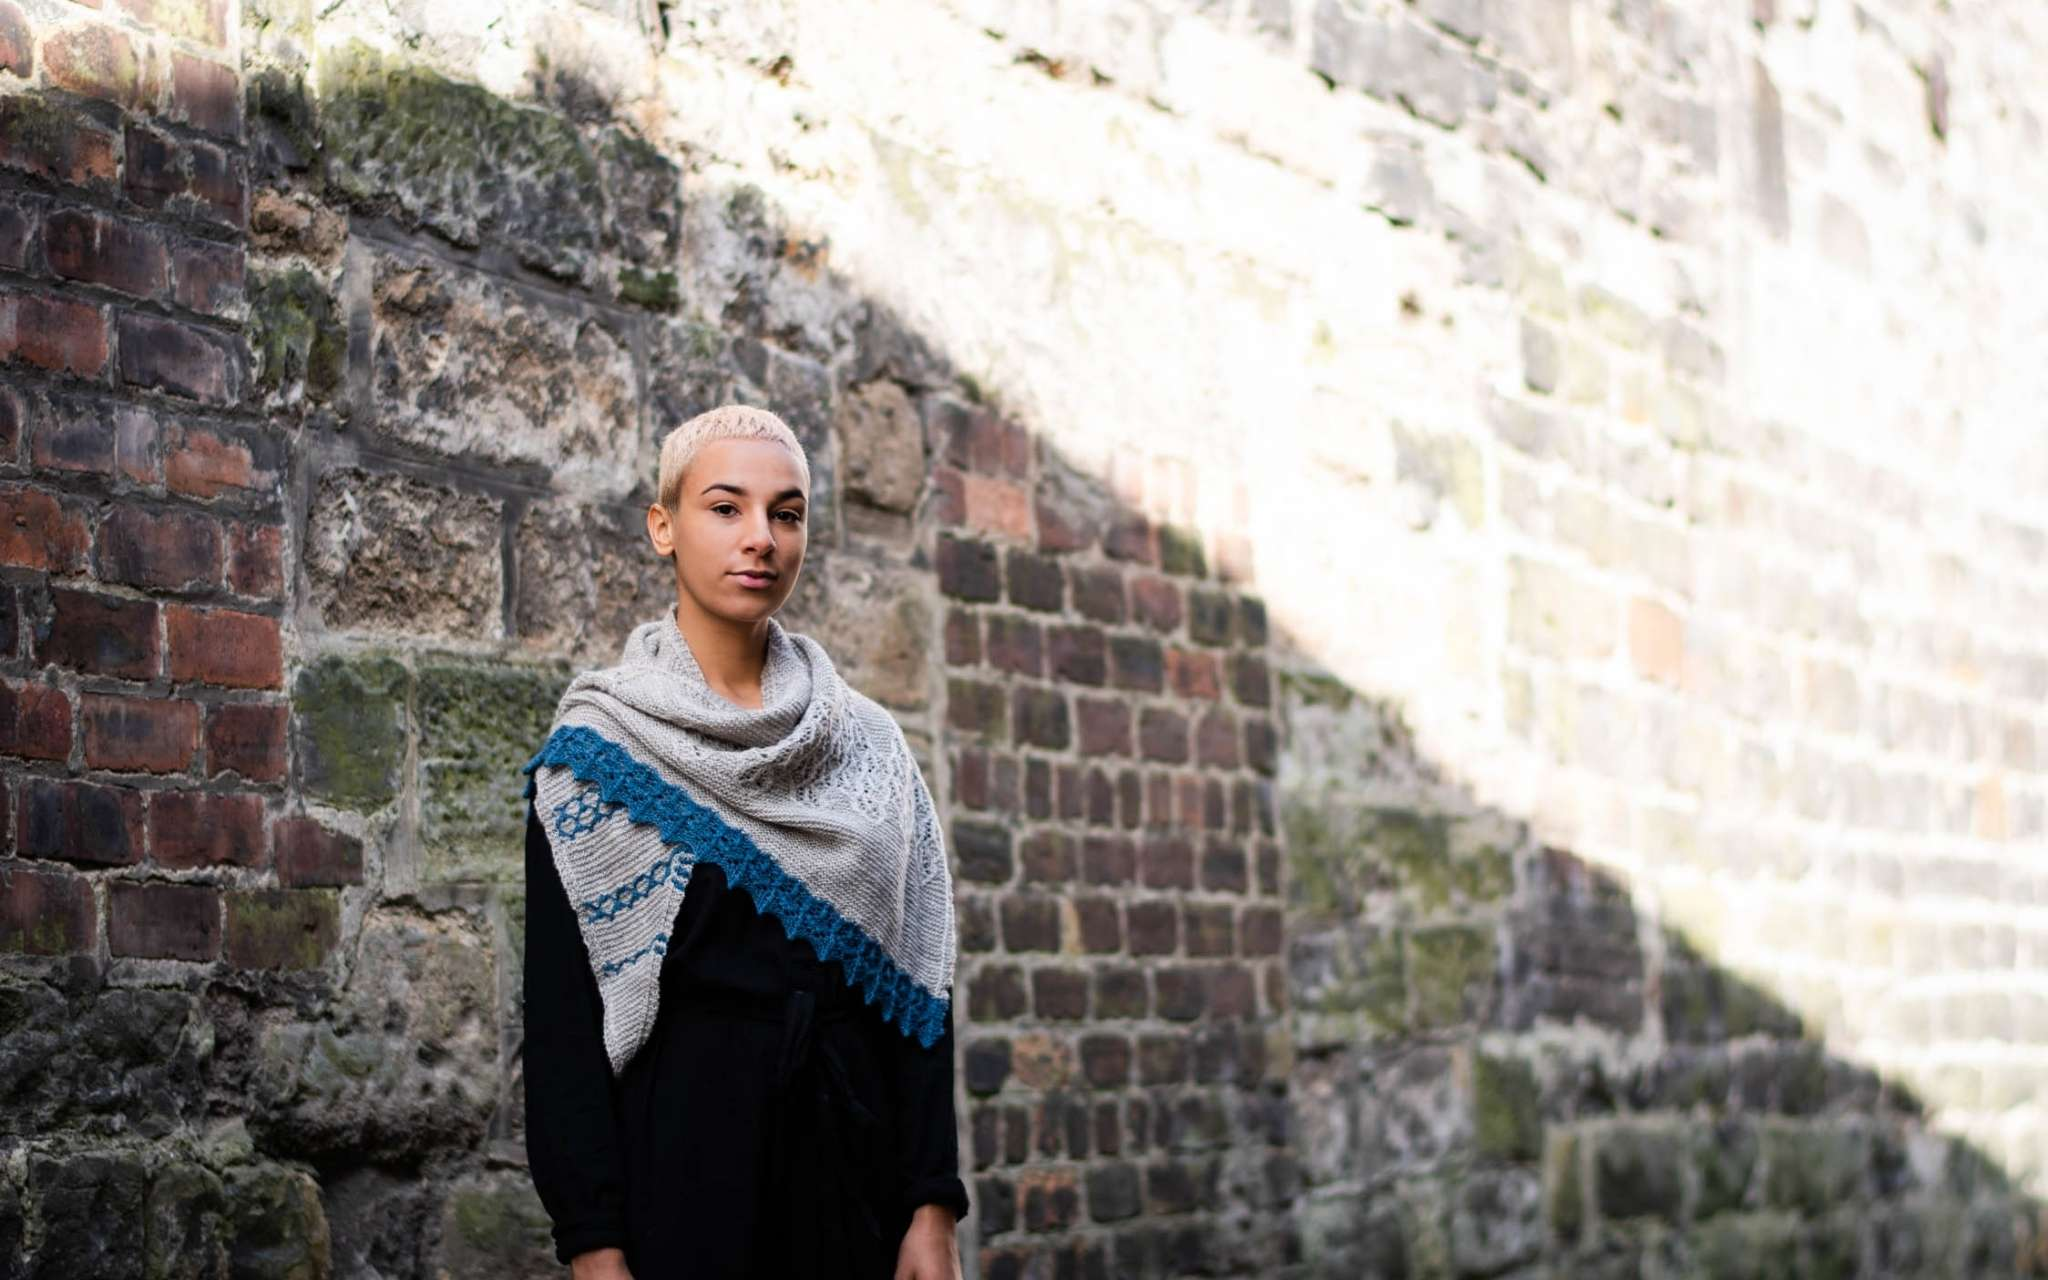 A model with short pale hair stands against a brick wall in the bright sunshine. They are wearing dark clothes, and a pale grey shawl with blue contrast edging is around their neck.